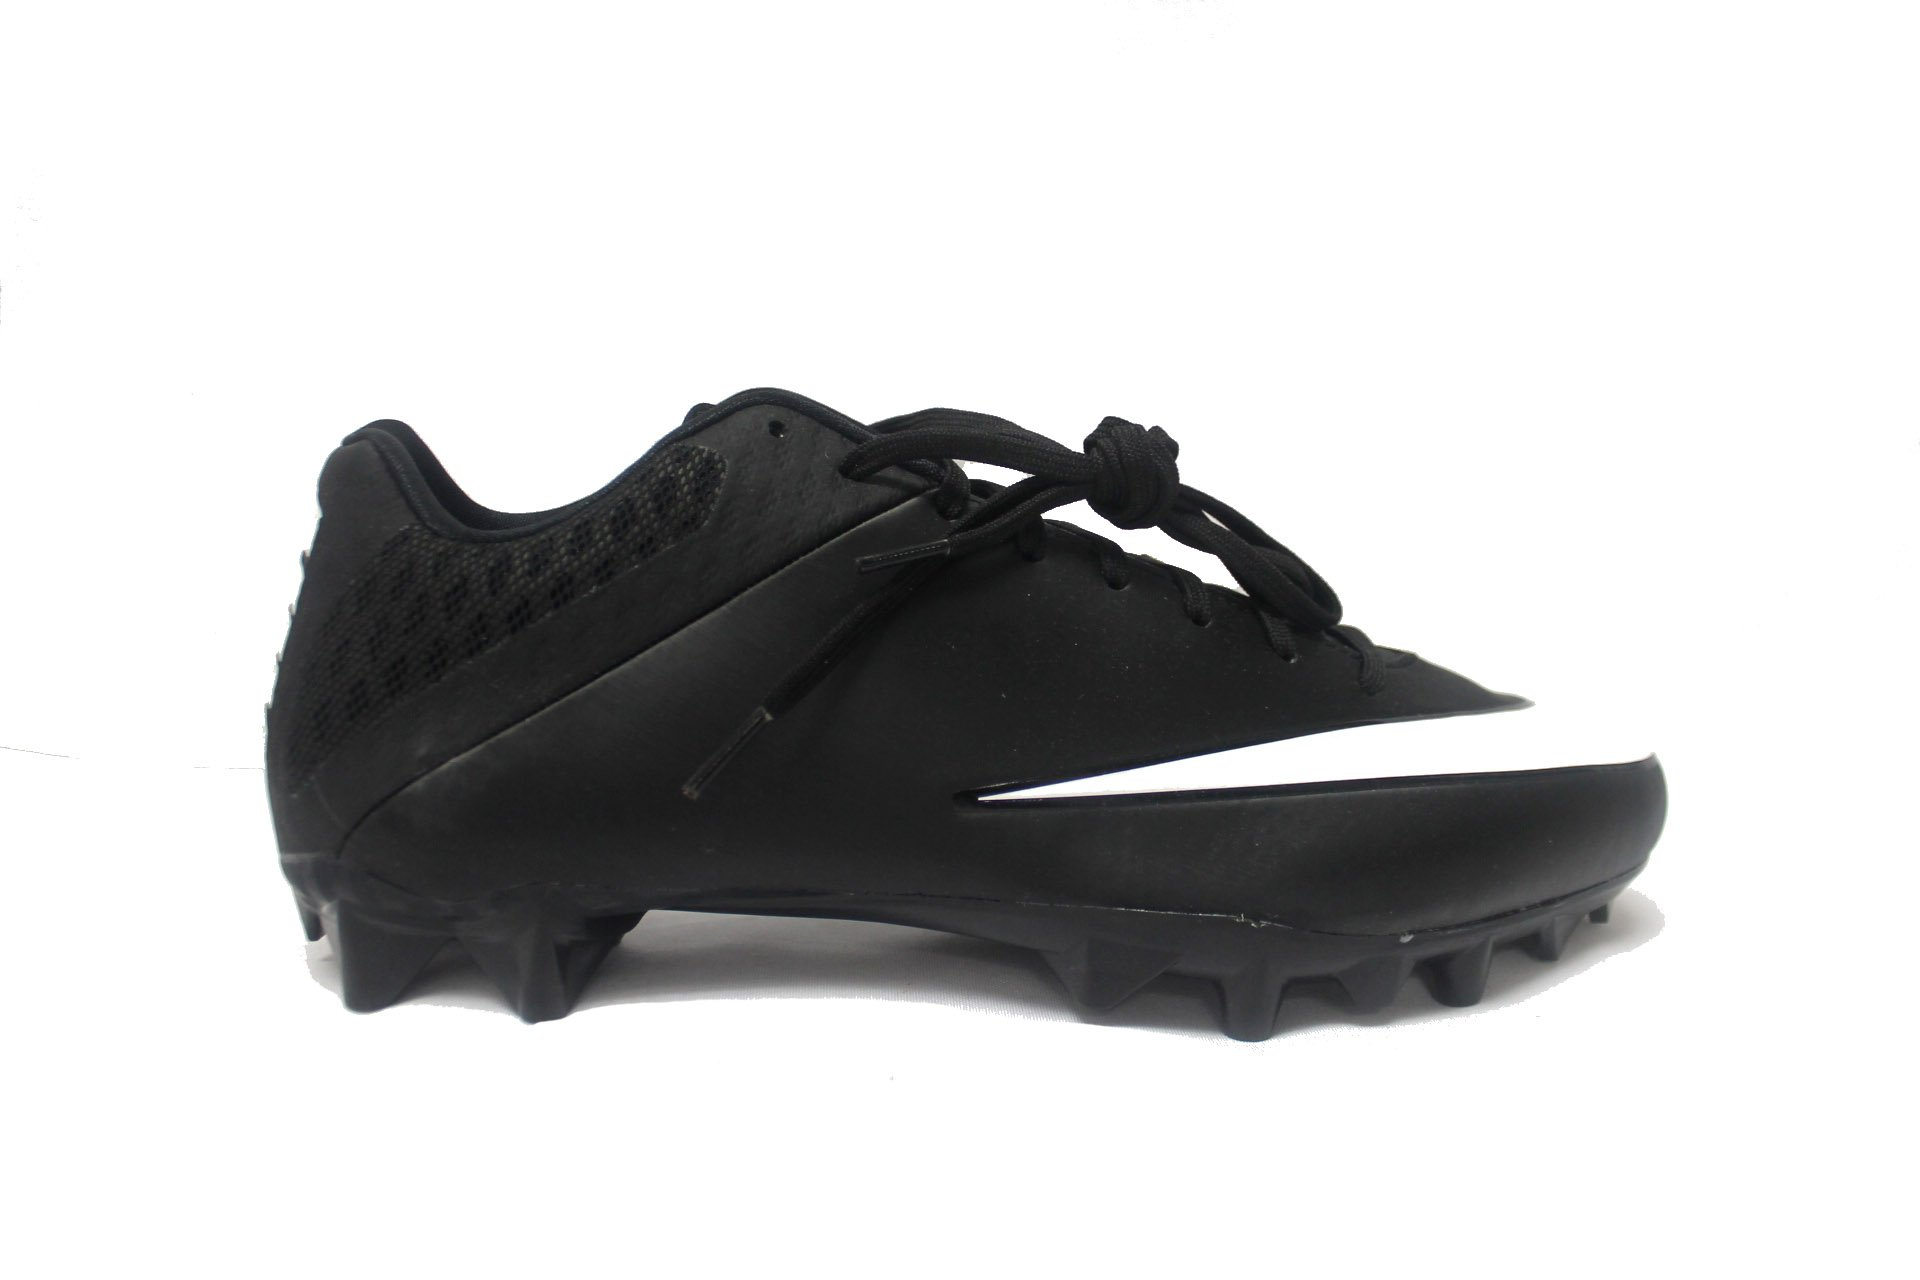 Galleon - NIKE Vapor Speed 2 TD CF Football Cleats (12 9d73954d16d